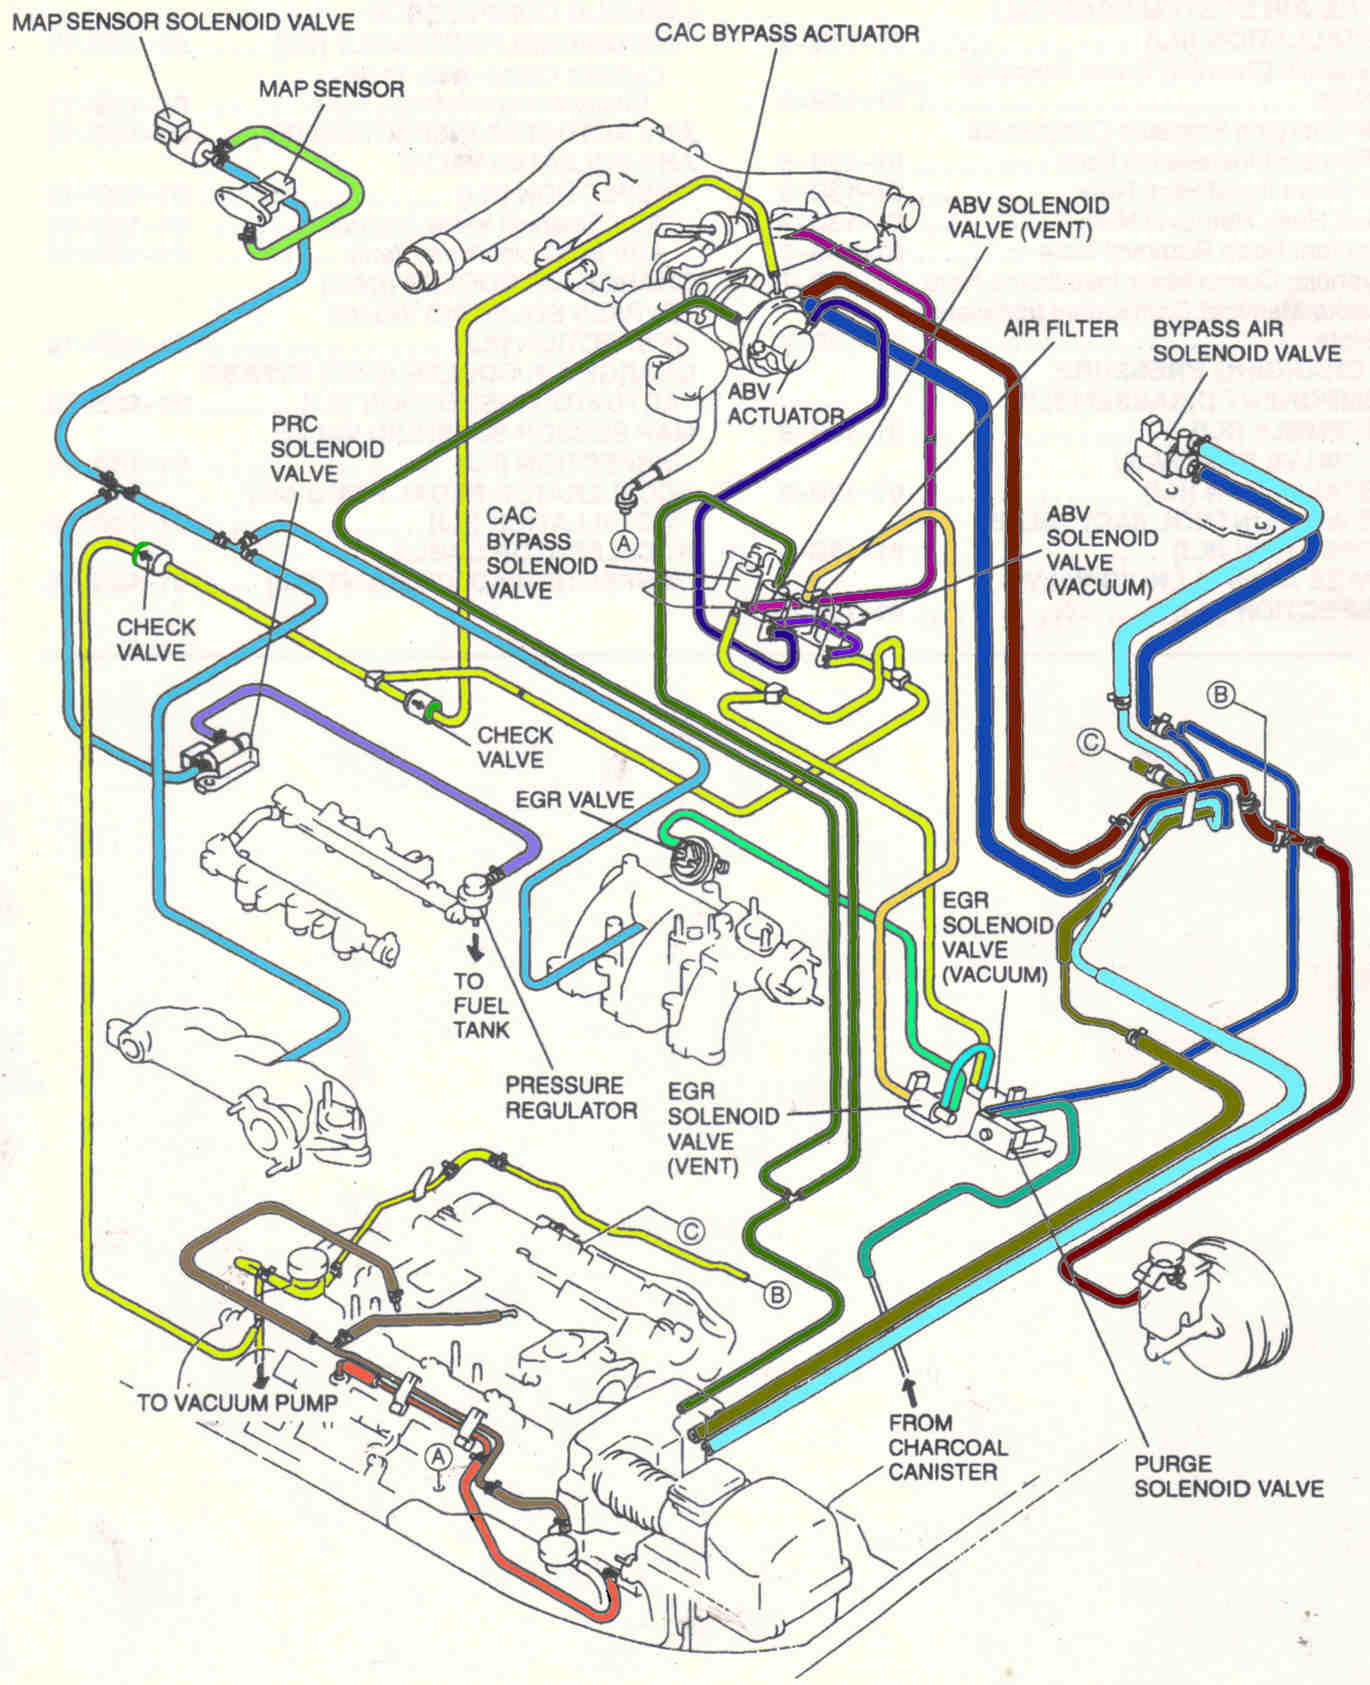 92664 Engine Codes 2 on 2000 mazda millenia s vacuum diagram